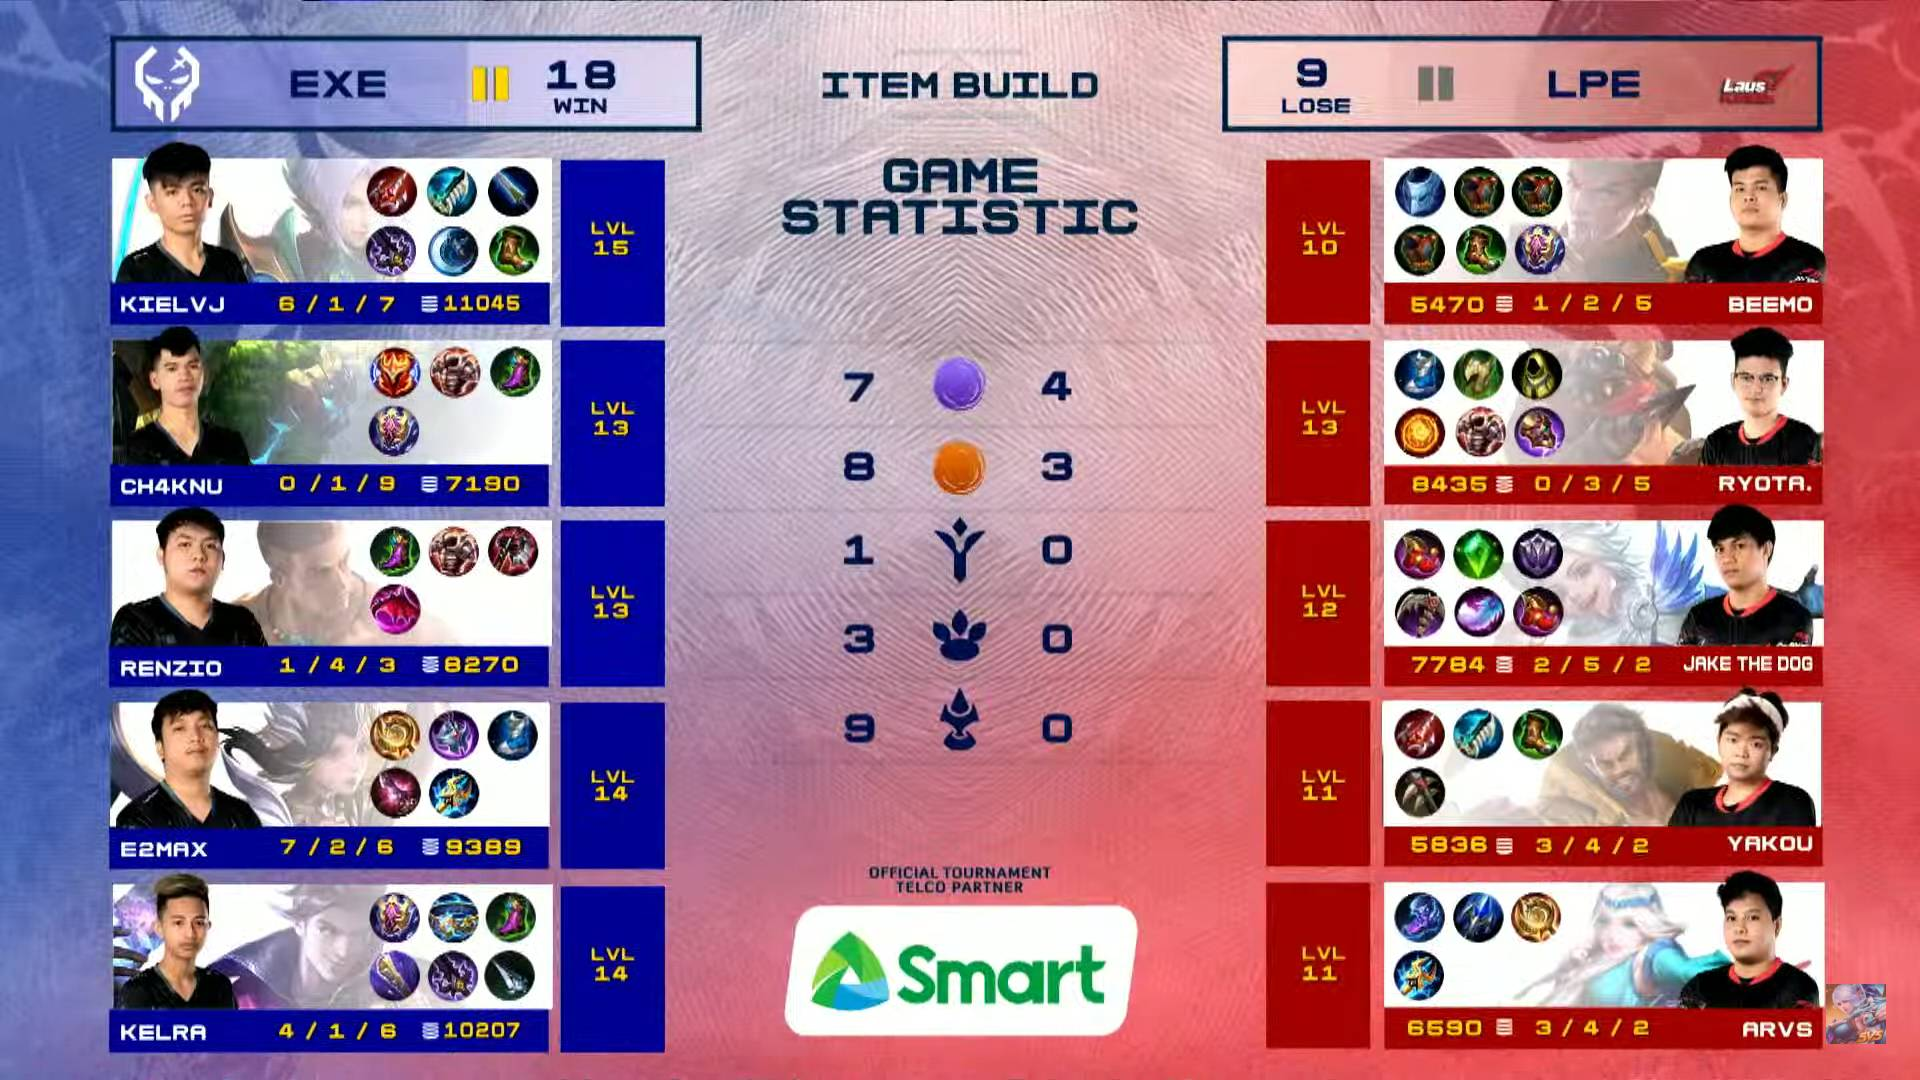 MPL-PH-Season-7-Execration-def-Playbook-Game-2 Kielvj's crucial Retribution play carries Execration to MPL PH 7 playoffs ESports Mobile Legends MPL-PH News  - philippine sports news